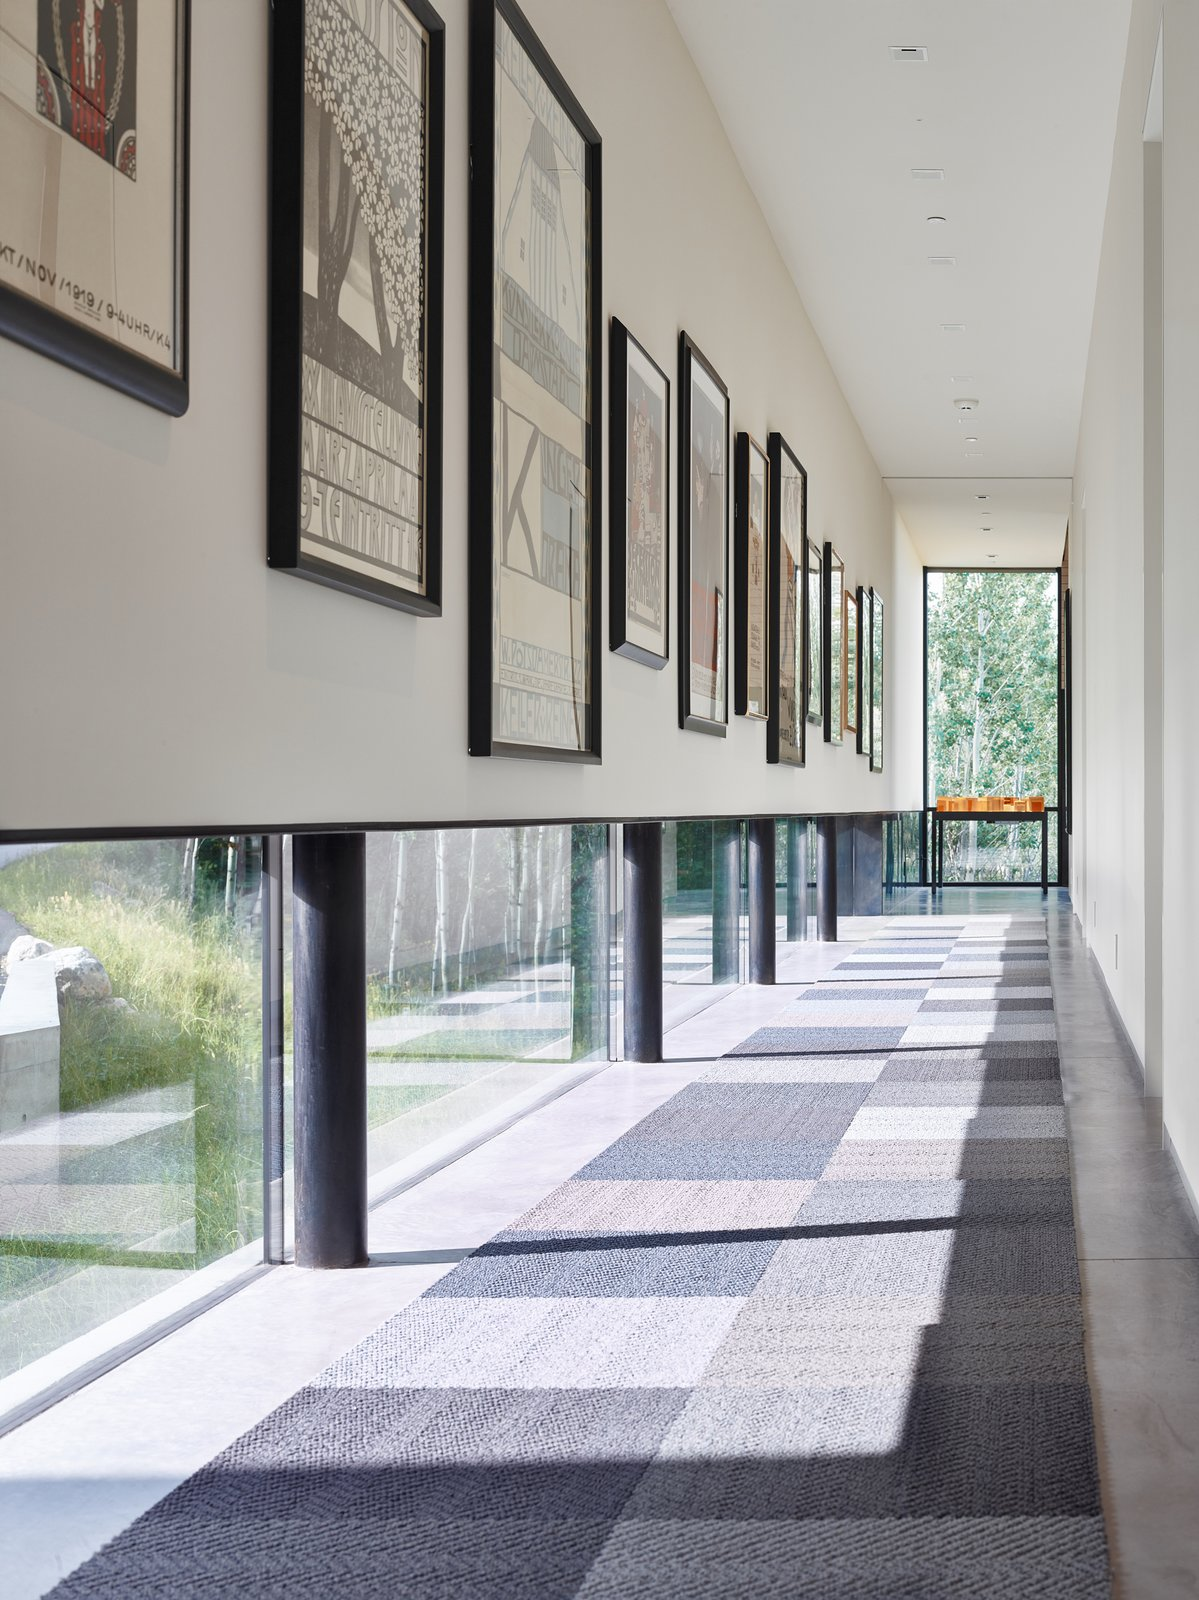 Hallway, Rug Floor, and Concrete Floor An art gallery was designed with low windows to allow natural light to permeate while protecting the sensitive art from harmful direct sunlight. It is these careful details that, in combination with the striking lineation of the home, create a harmonious alliance of function and design.  Wyoming Residence by Abramson Teiger Architects